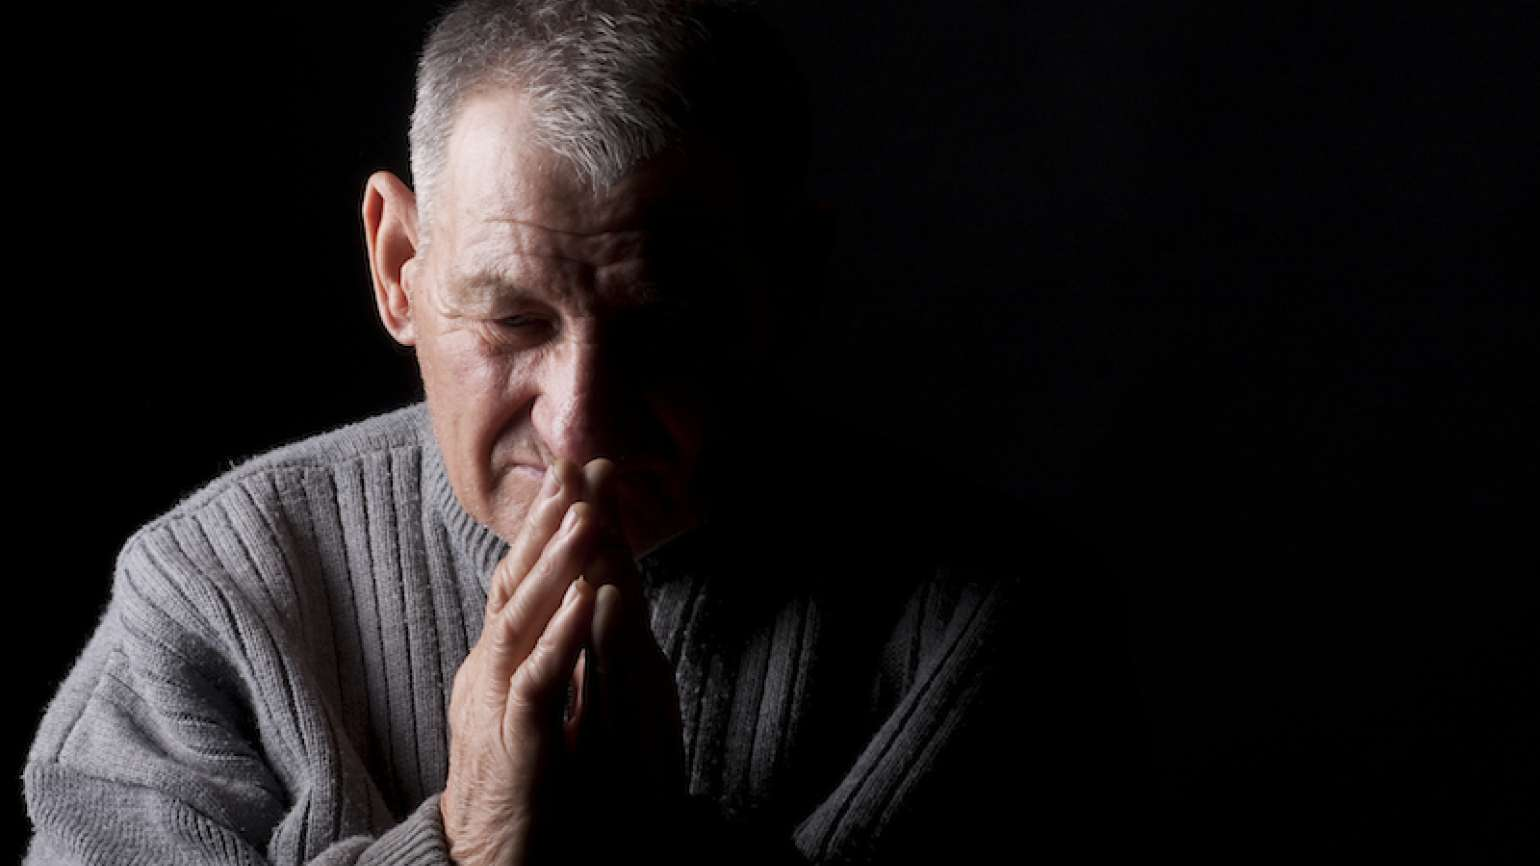 Praying for others. Photo by Andrei-md, Thinkstock.